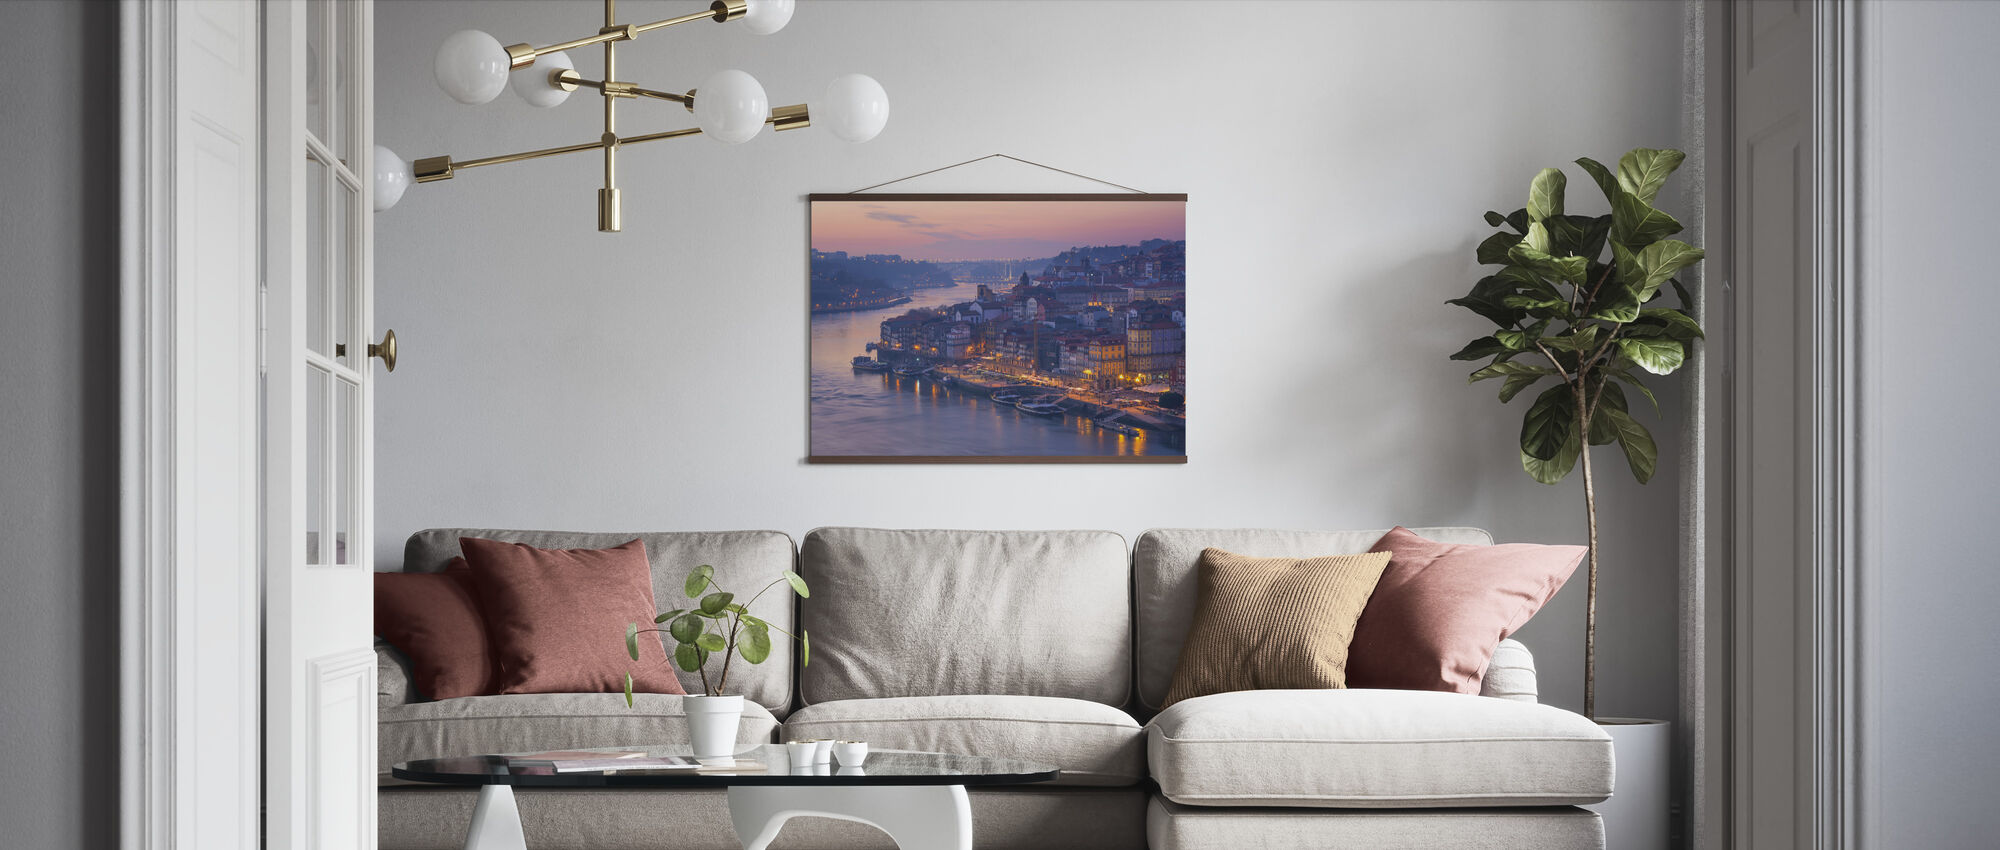 Sunset in Porto City - Poster - Living Room